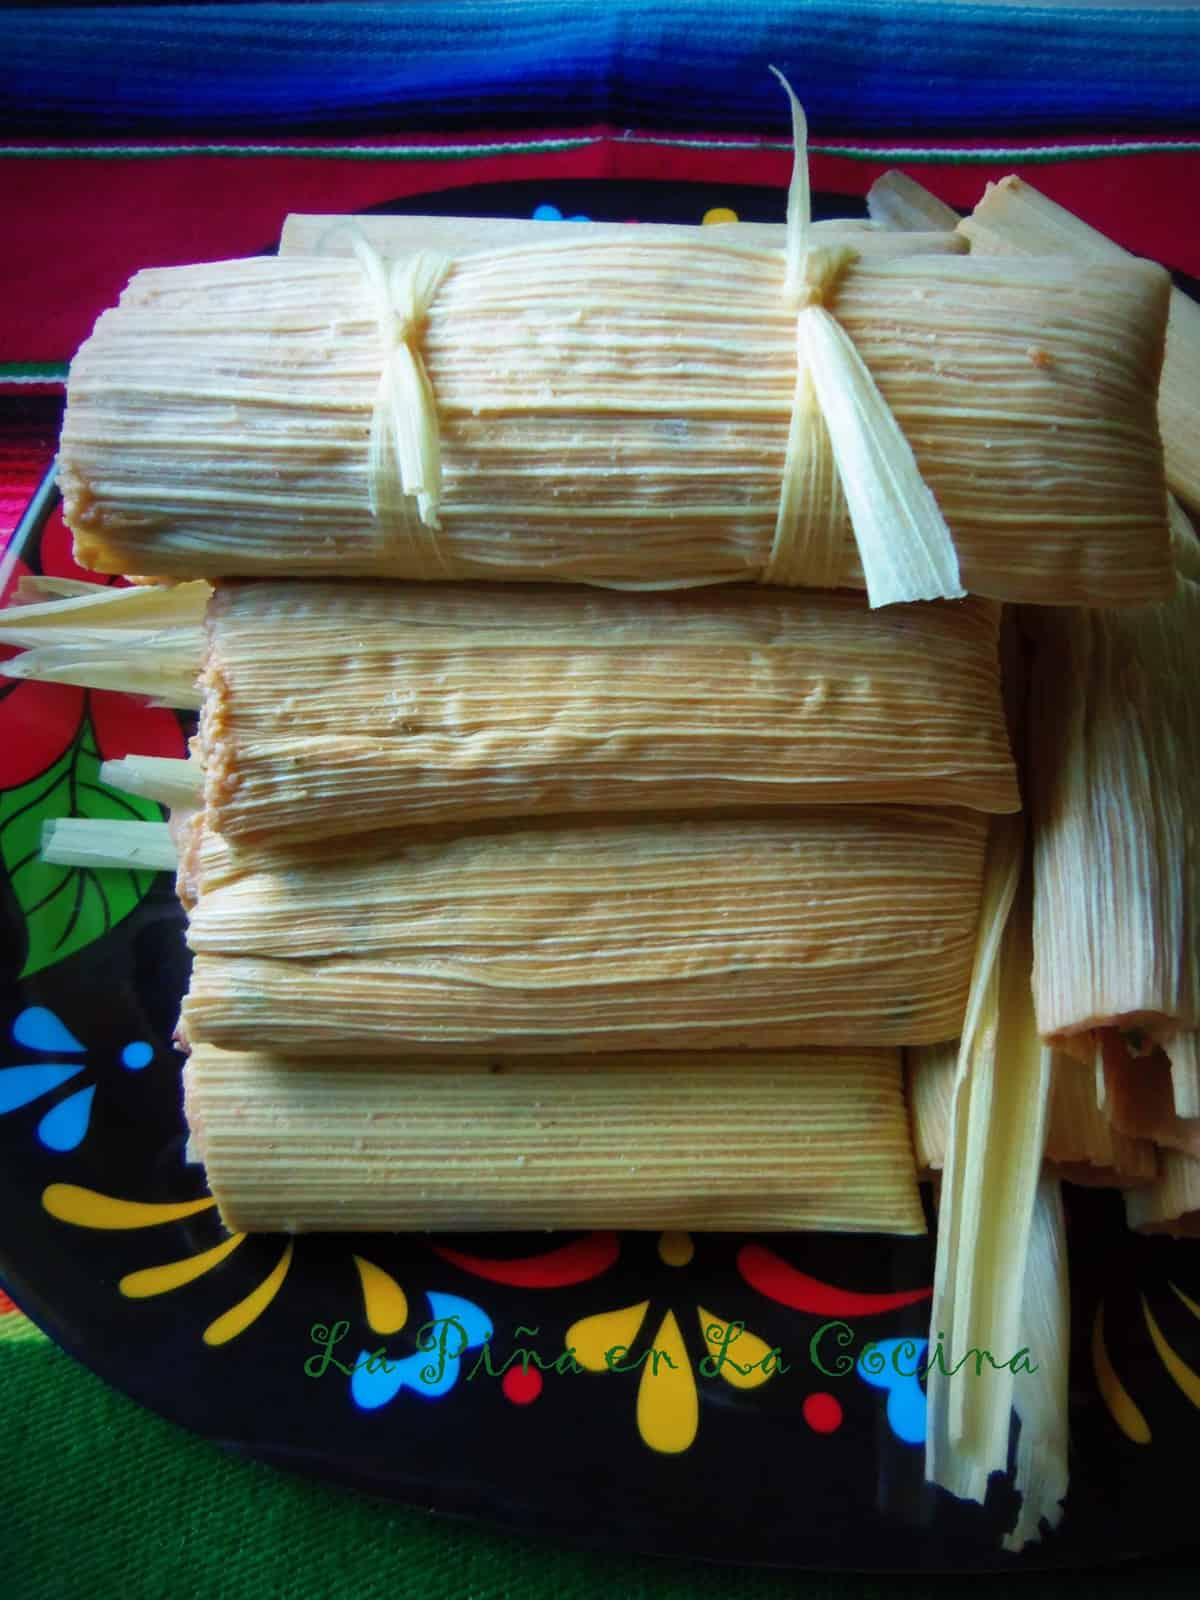 Uncooked Pork Tamales. We like to make one big tamal when we are almost done filling. I believe my cousin named this one El Borracho! LOl!